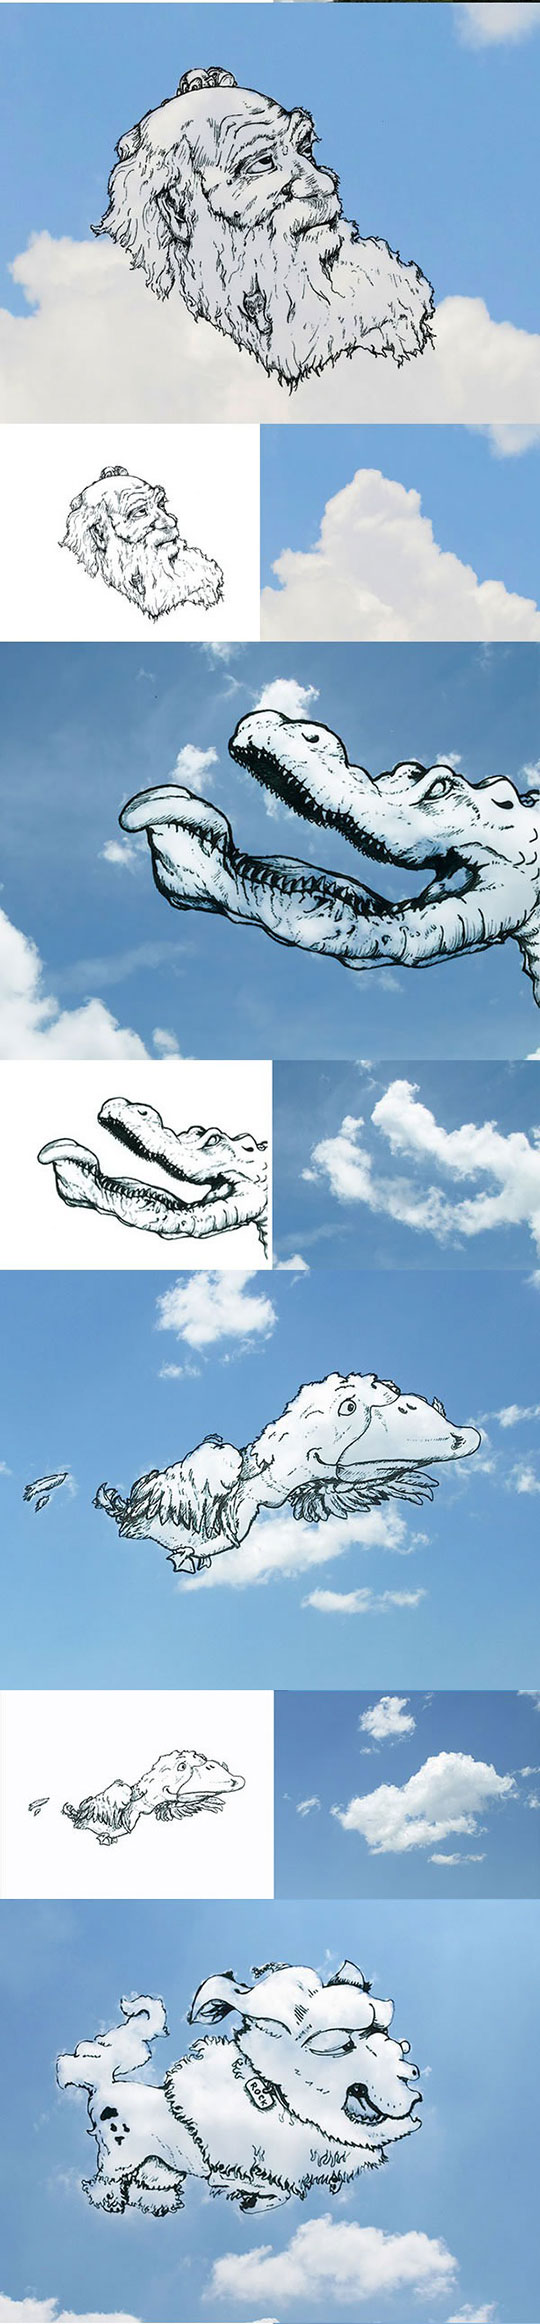 cool-cloud-drawings-animals